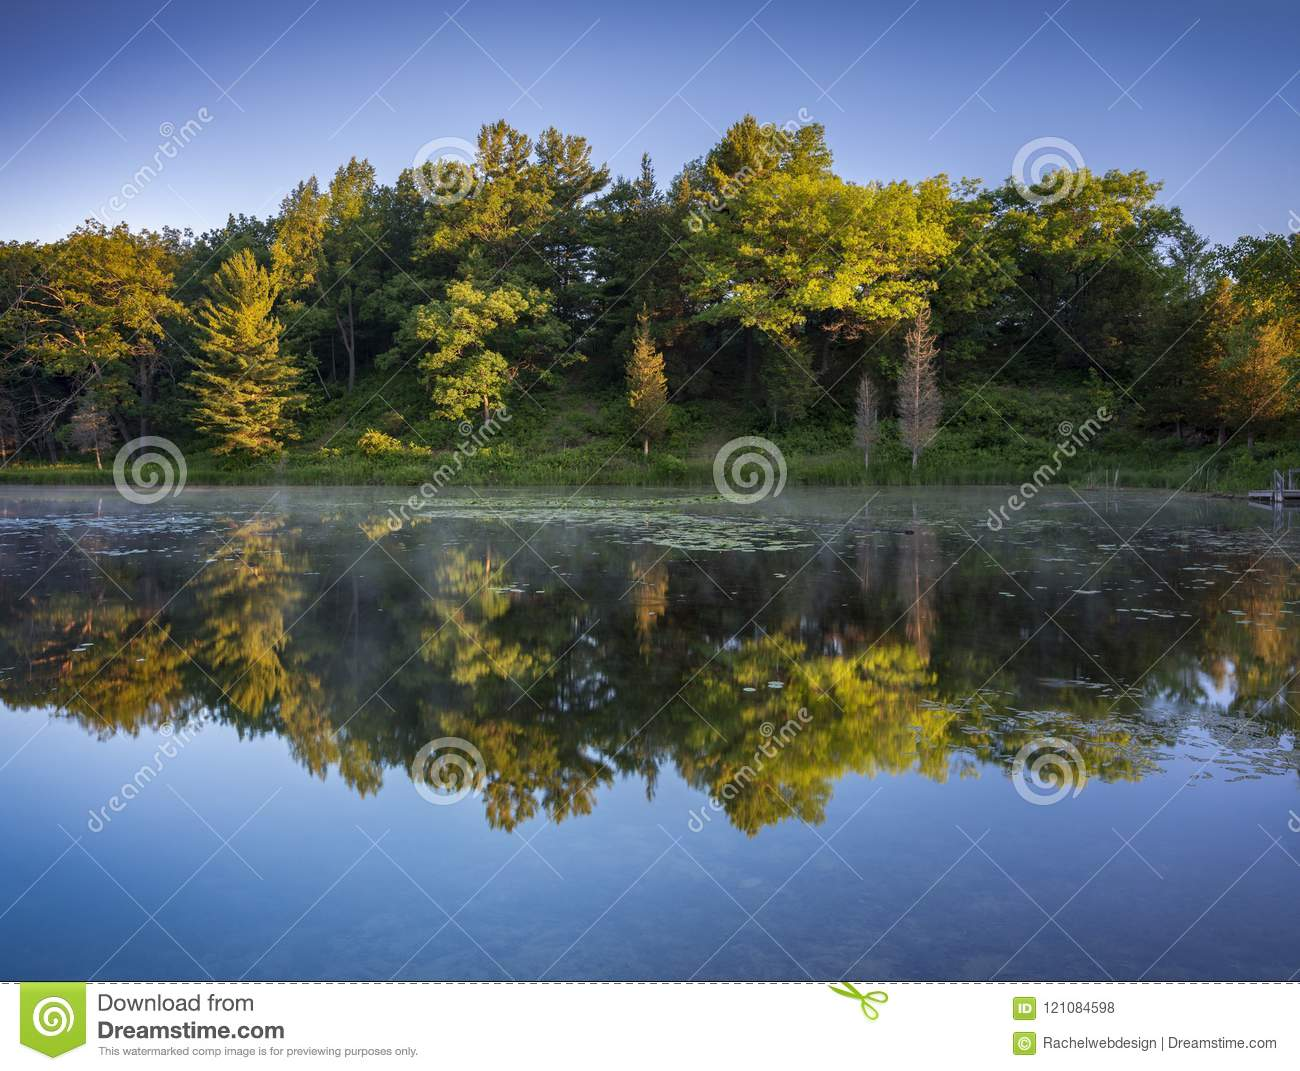 Forest bathed in warm sunrise light reflected in perfect symmetry over calm lake.